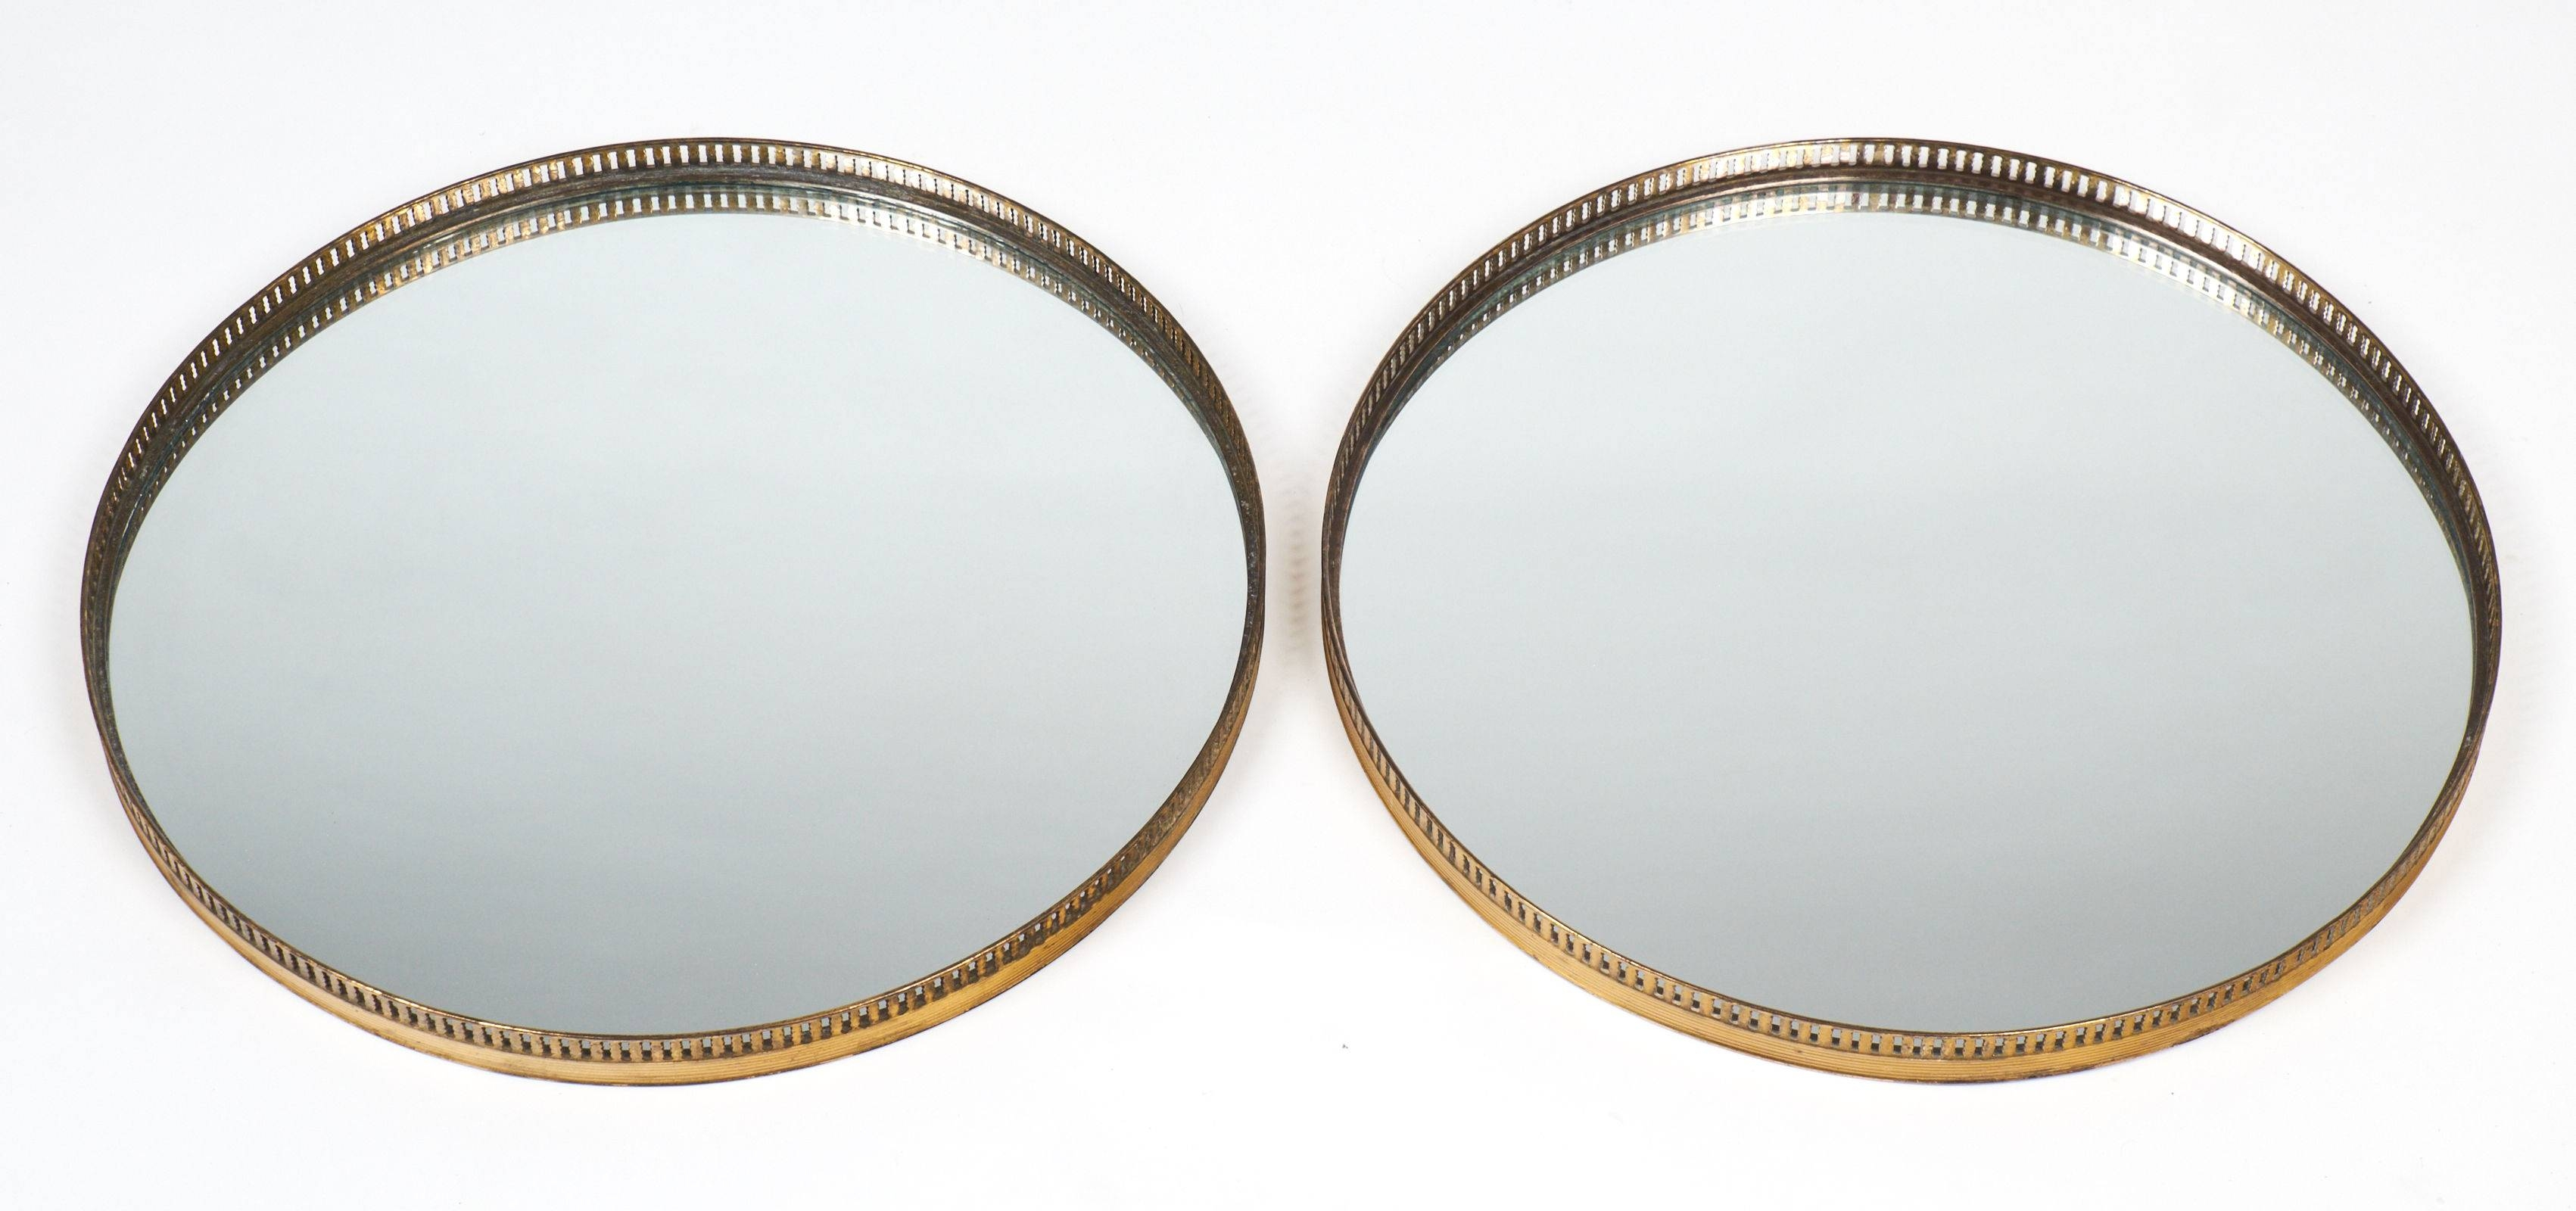 Antique Brass Gallery Round Wall Mirrors - Jean Marc Fray throughout Antique Round Mirrors (Image 3 of 25)